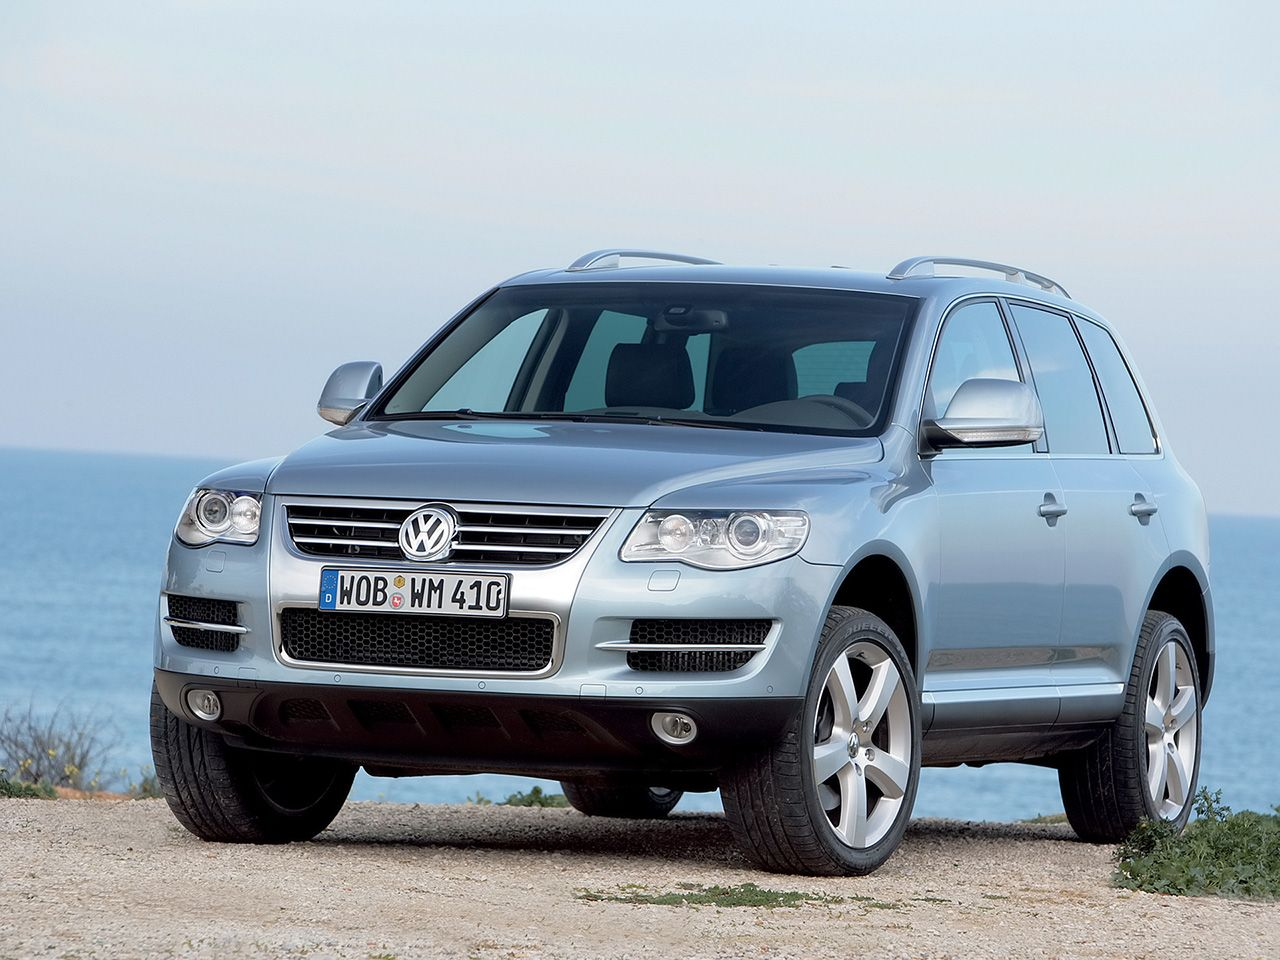 volkswagen touareg as long as its the v10 turbo diesel vw pinterest volkswagen cars and. Black Bedroom Furniture Sets. Home Design Ideas